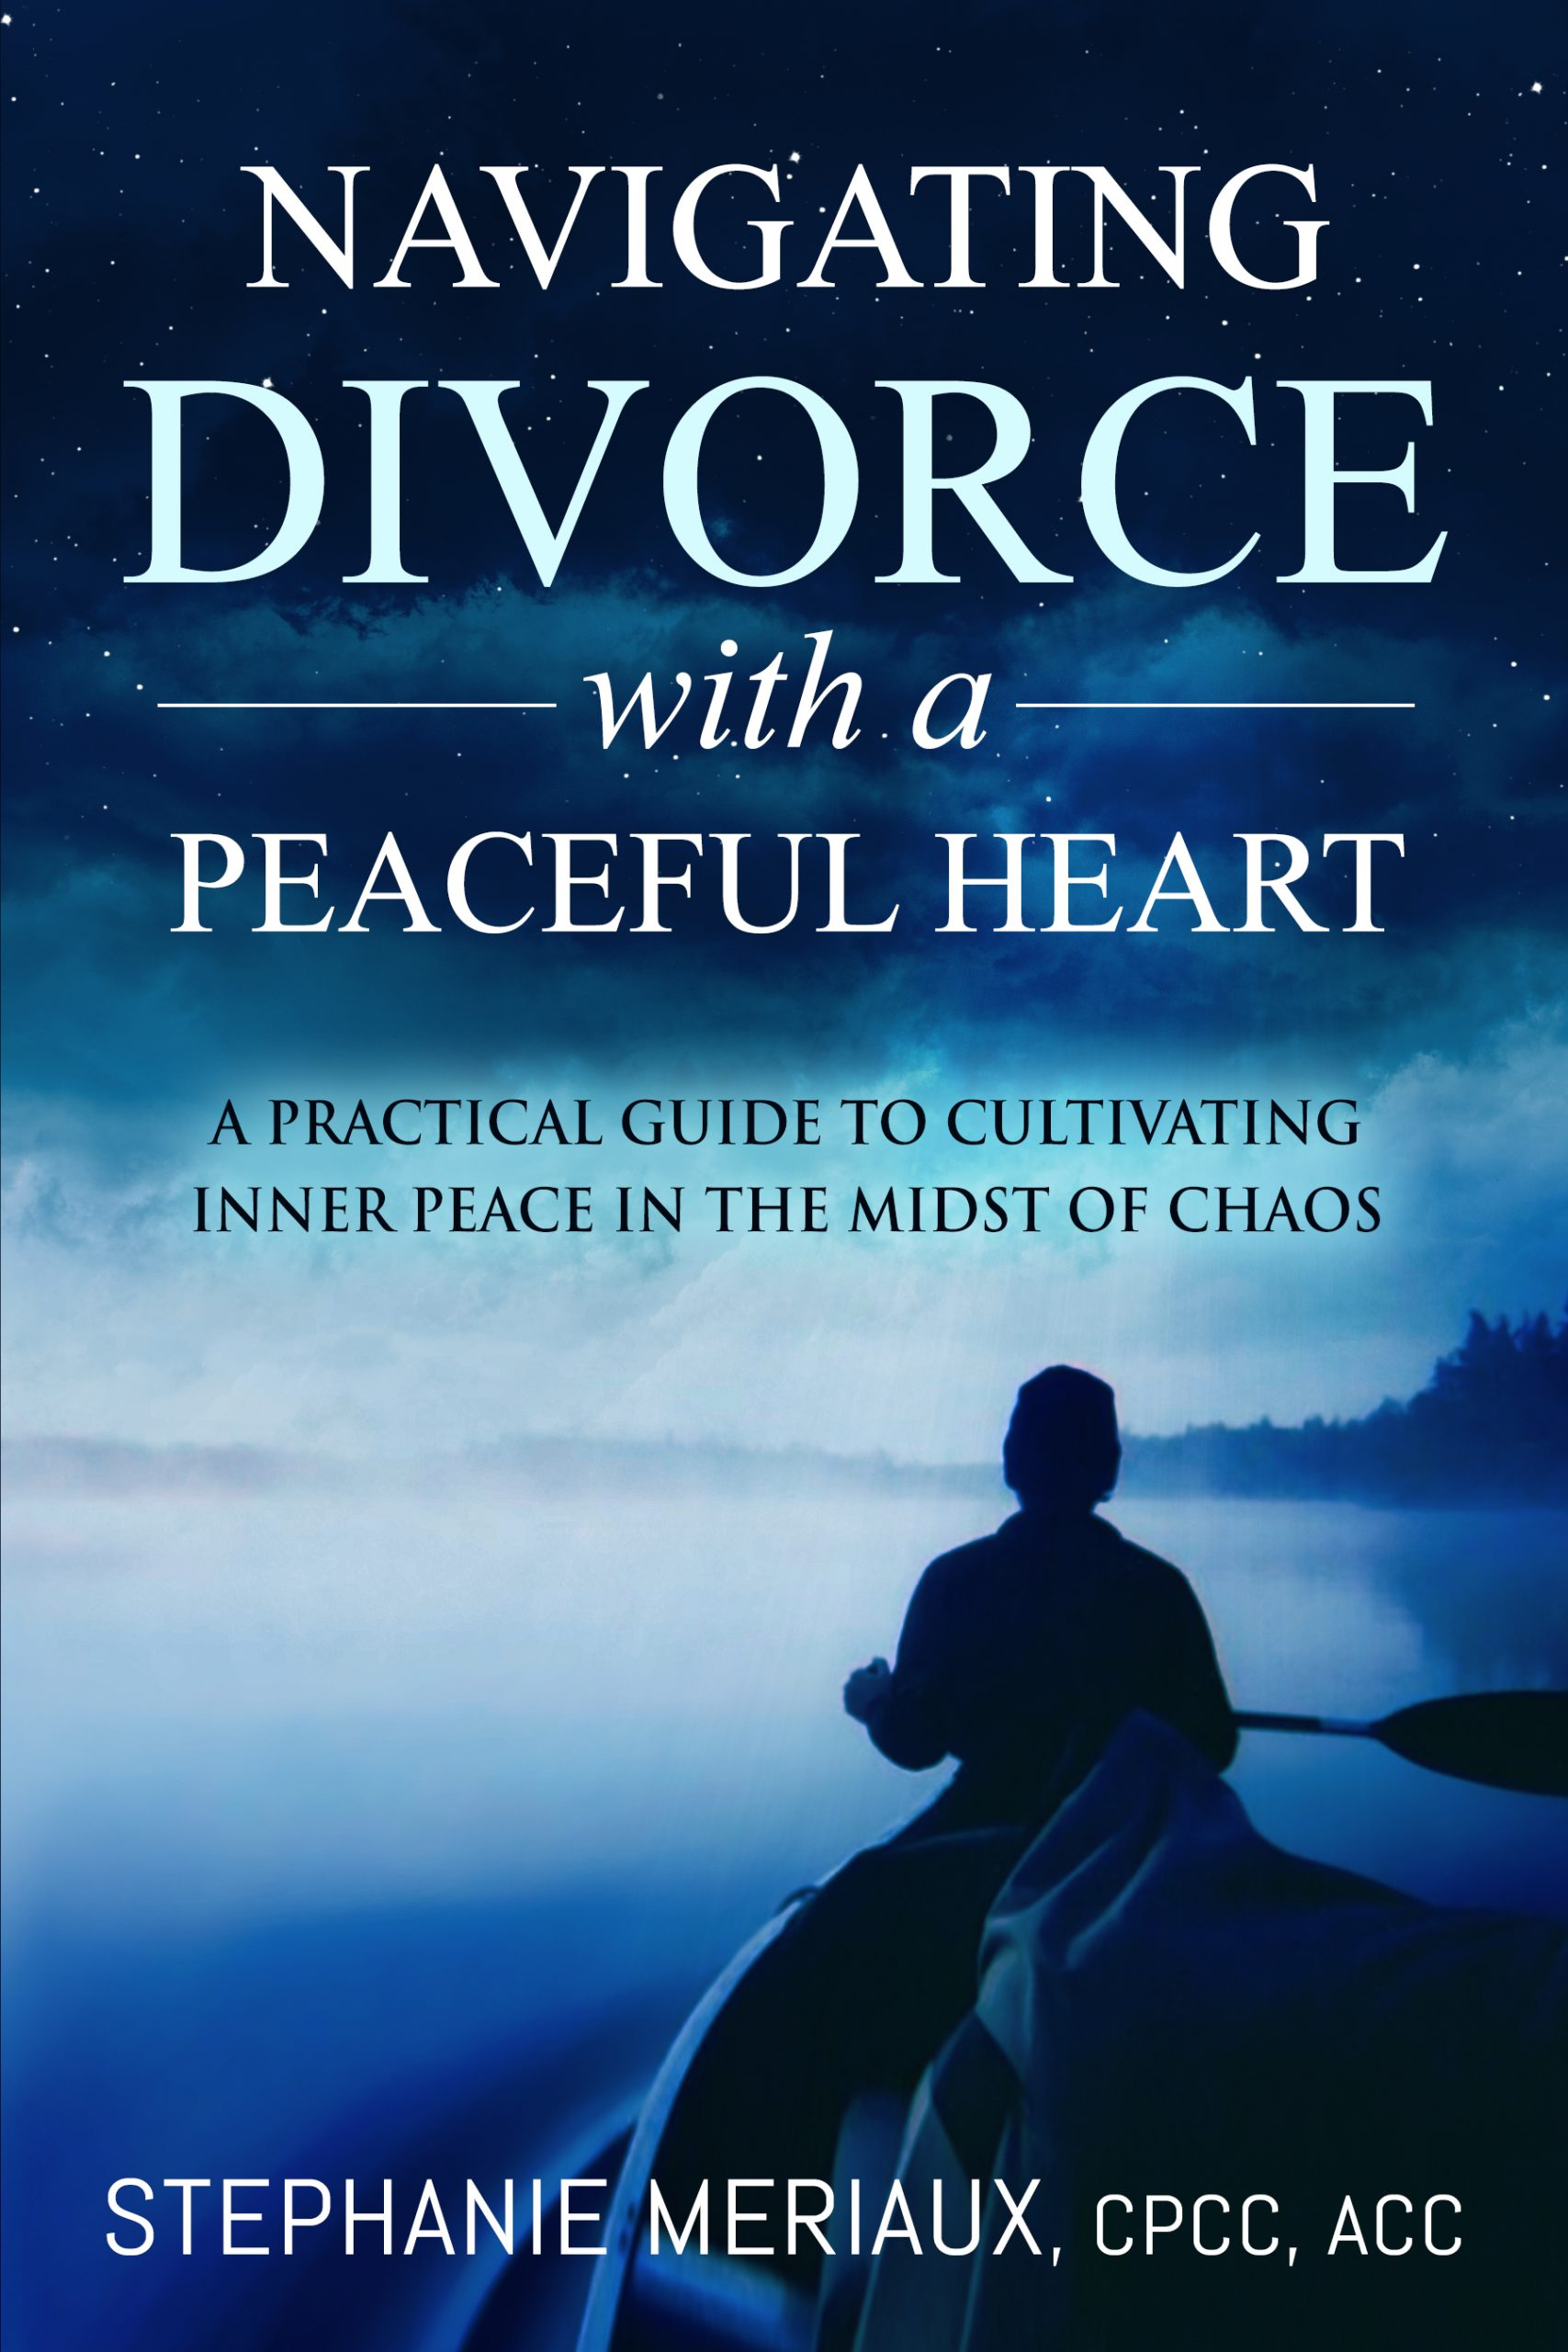 Navigating Divorce with a Peaceful Heart by Stephanie Meriaux